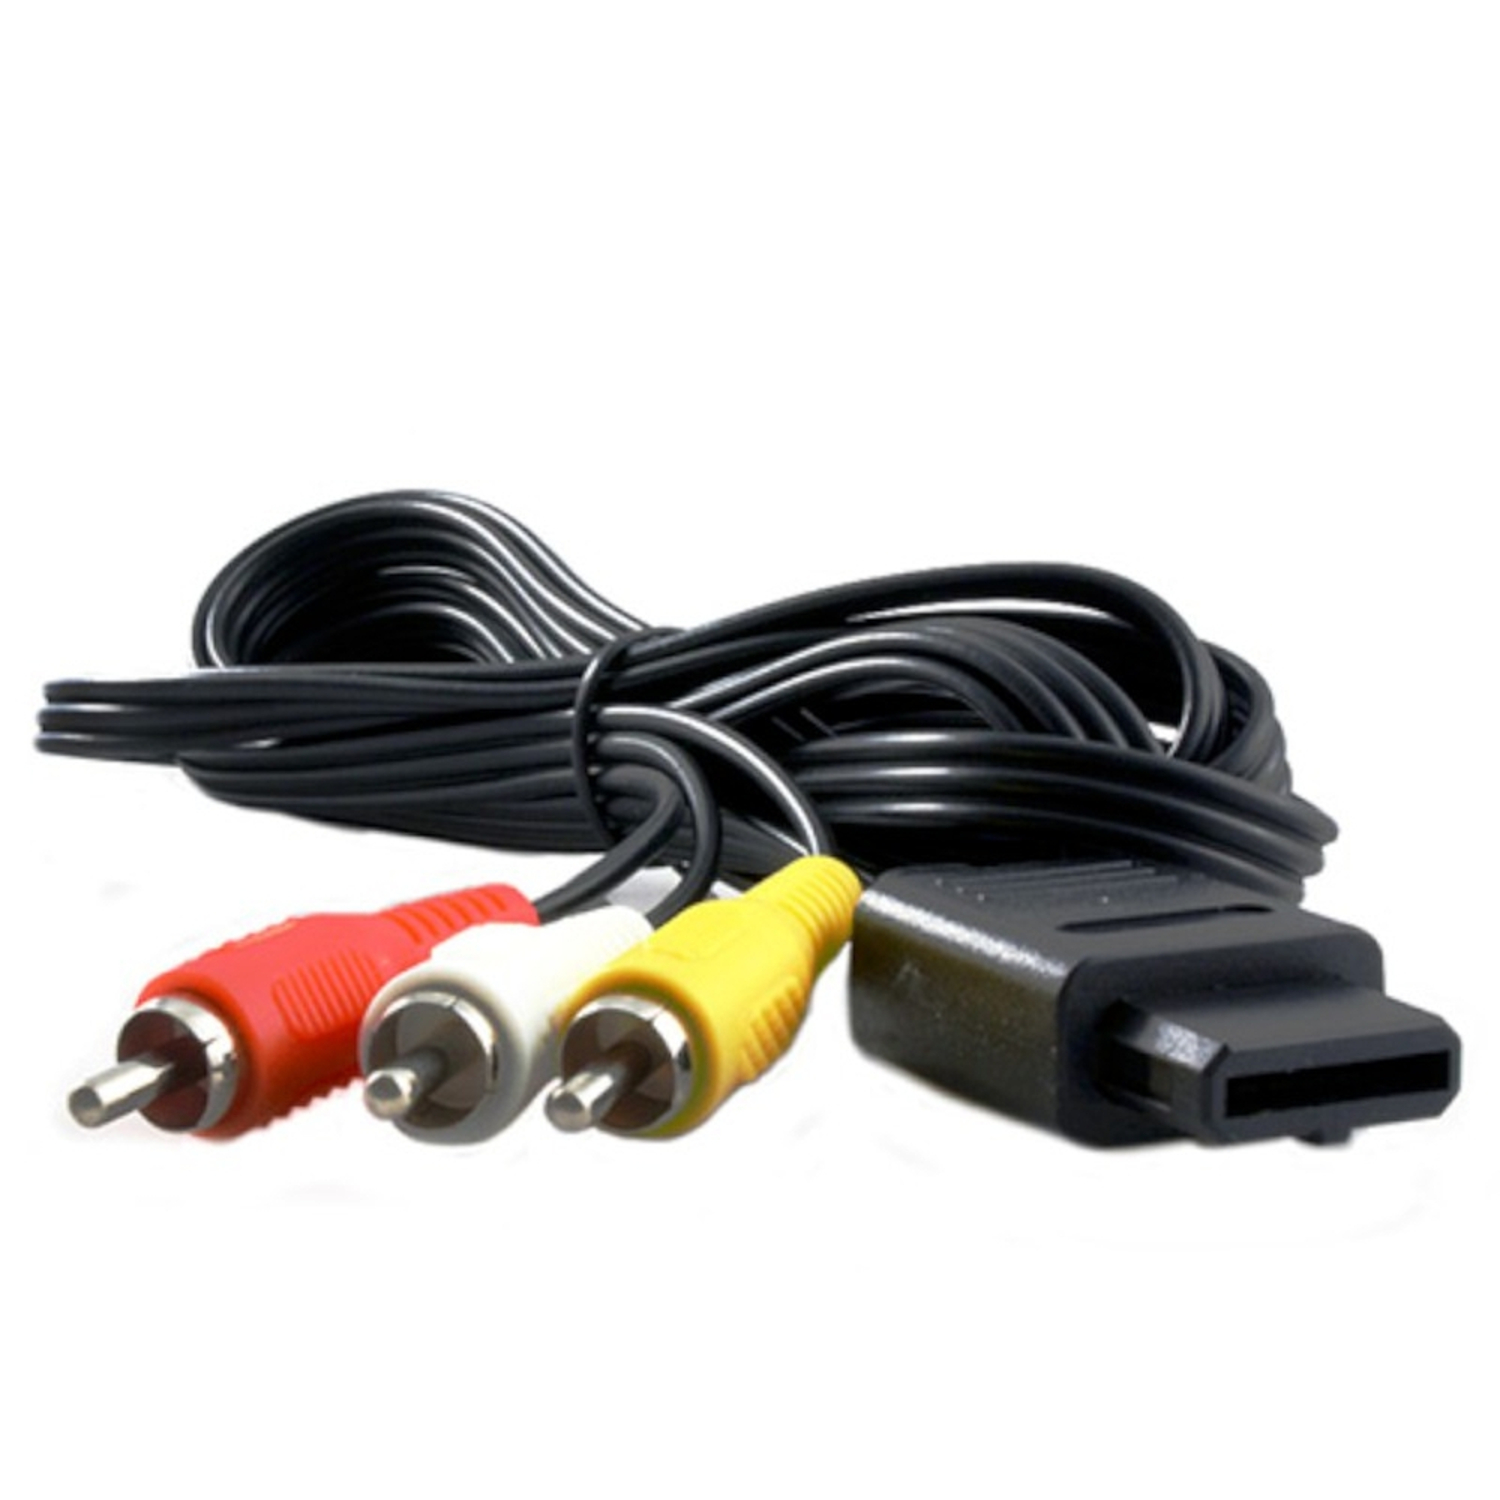 KMD AV Composite Cable For Nintendo GameCube, N64, SNES System